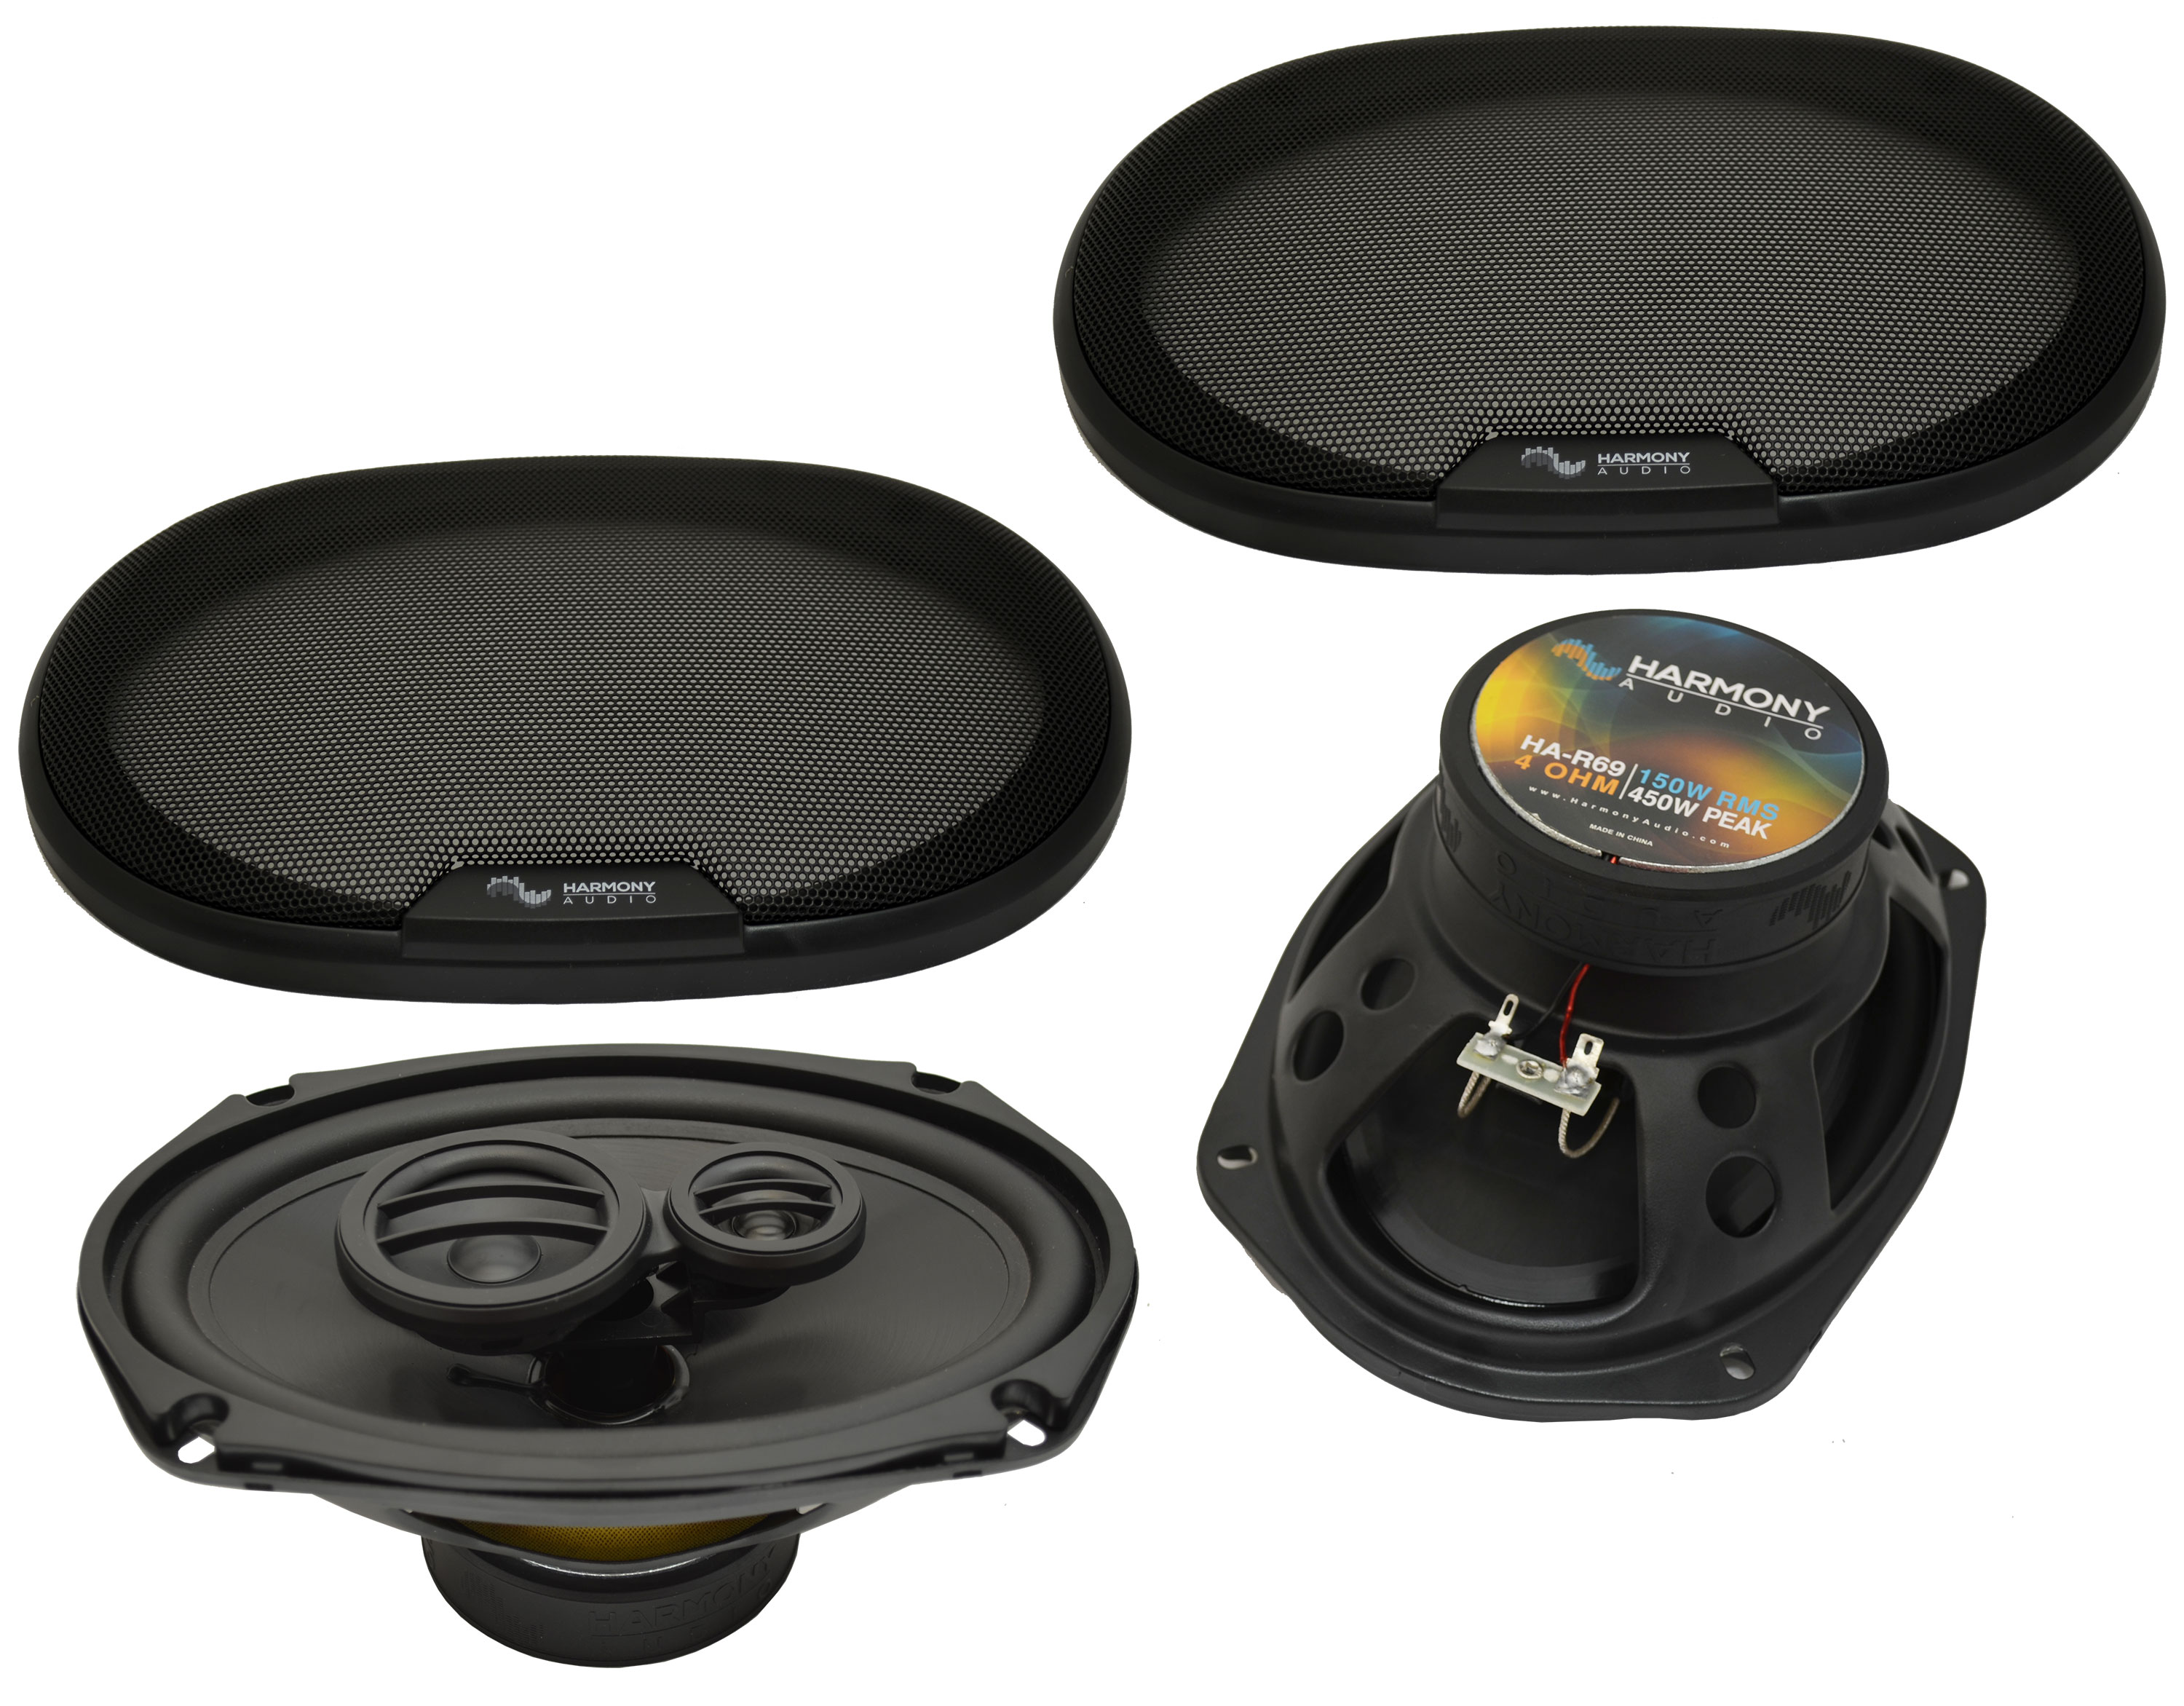 Fits Chevy Malibu 2008-2012 Rear Deck Replacement Harmony HA-R69 Speakers